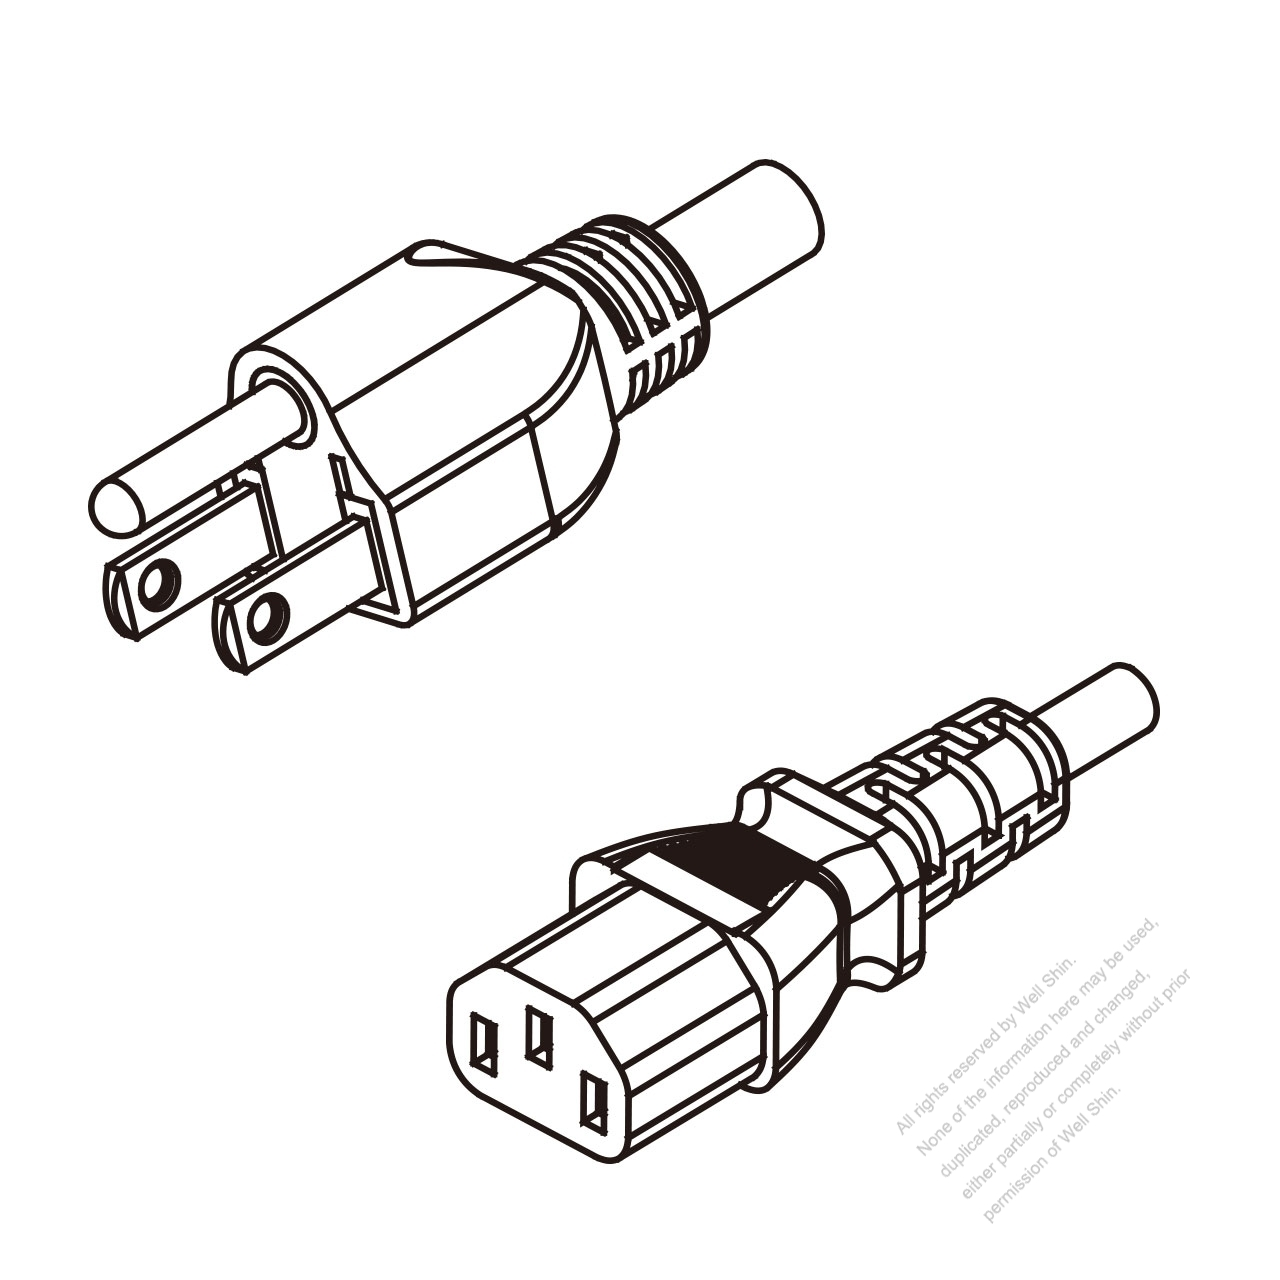 Taiwan 3 Pin Plug To Iec 320 C13 Ac Power Cord Set Molding